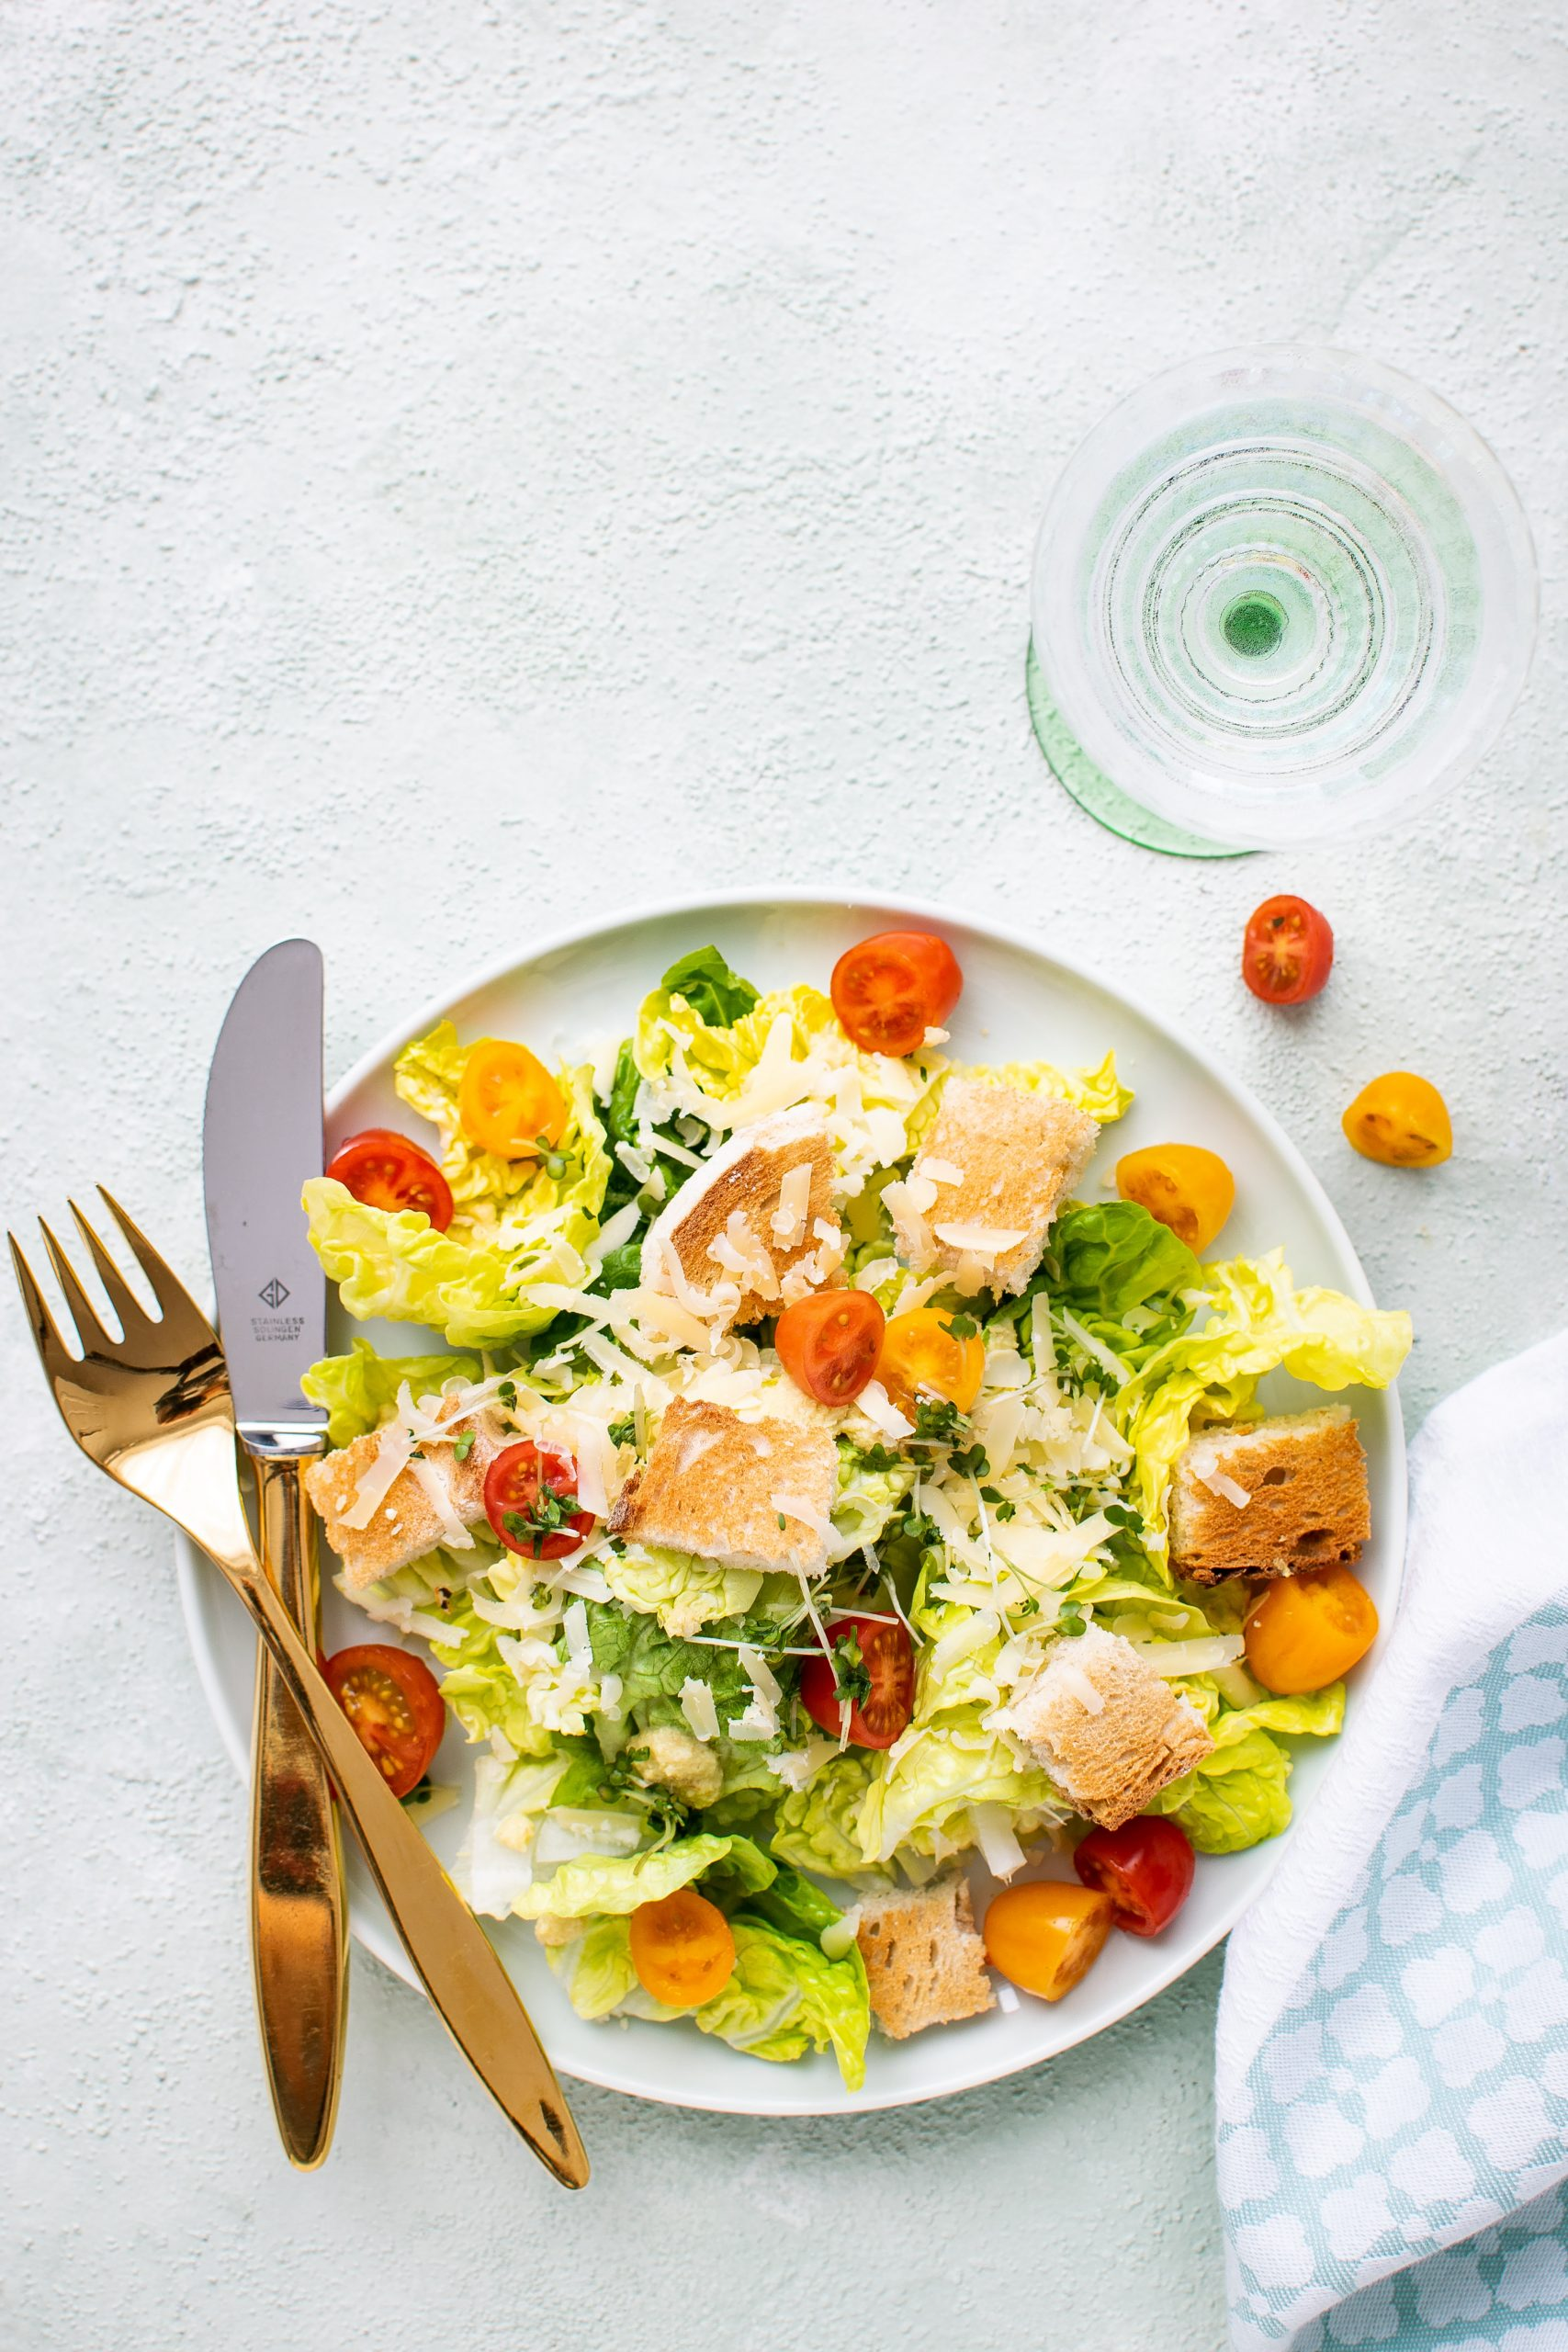 Caesar Salad Wine Pairing: with salmon or with chicken